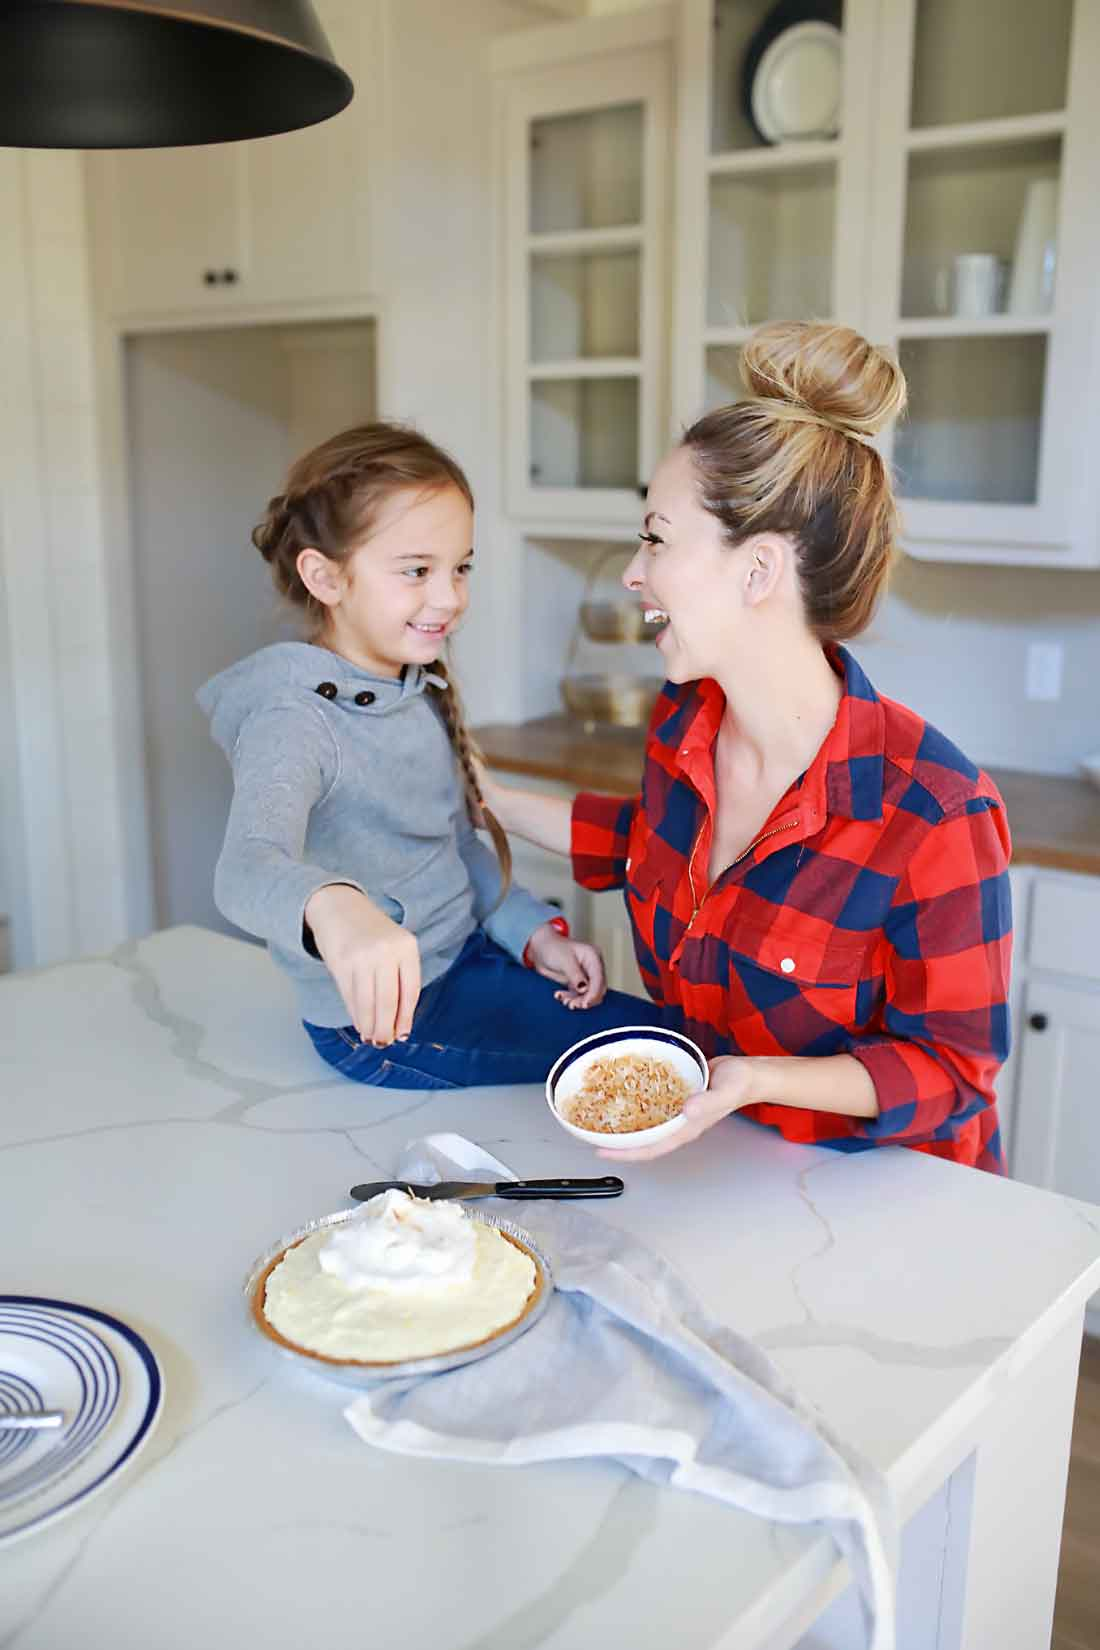 Making pies together helps relationships grow stronger!